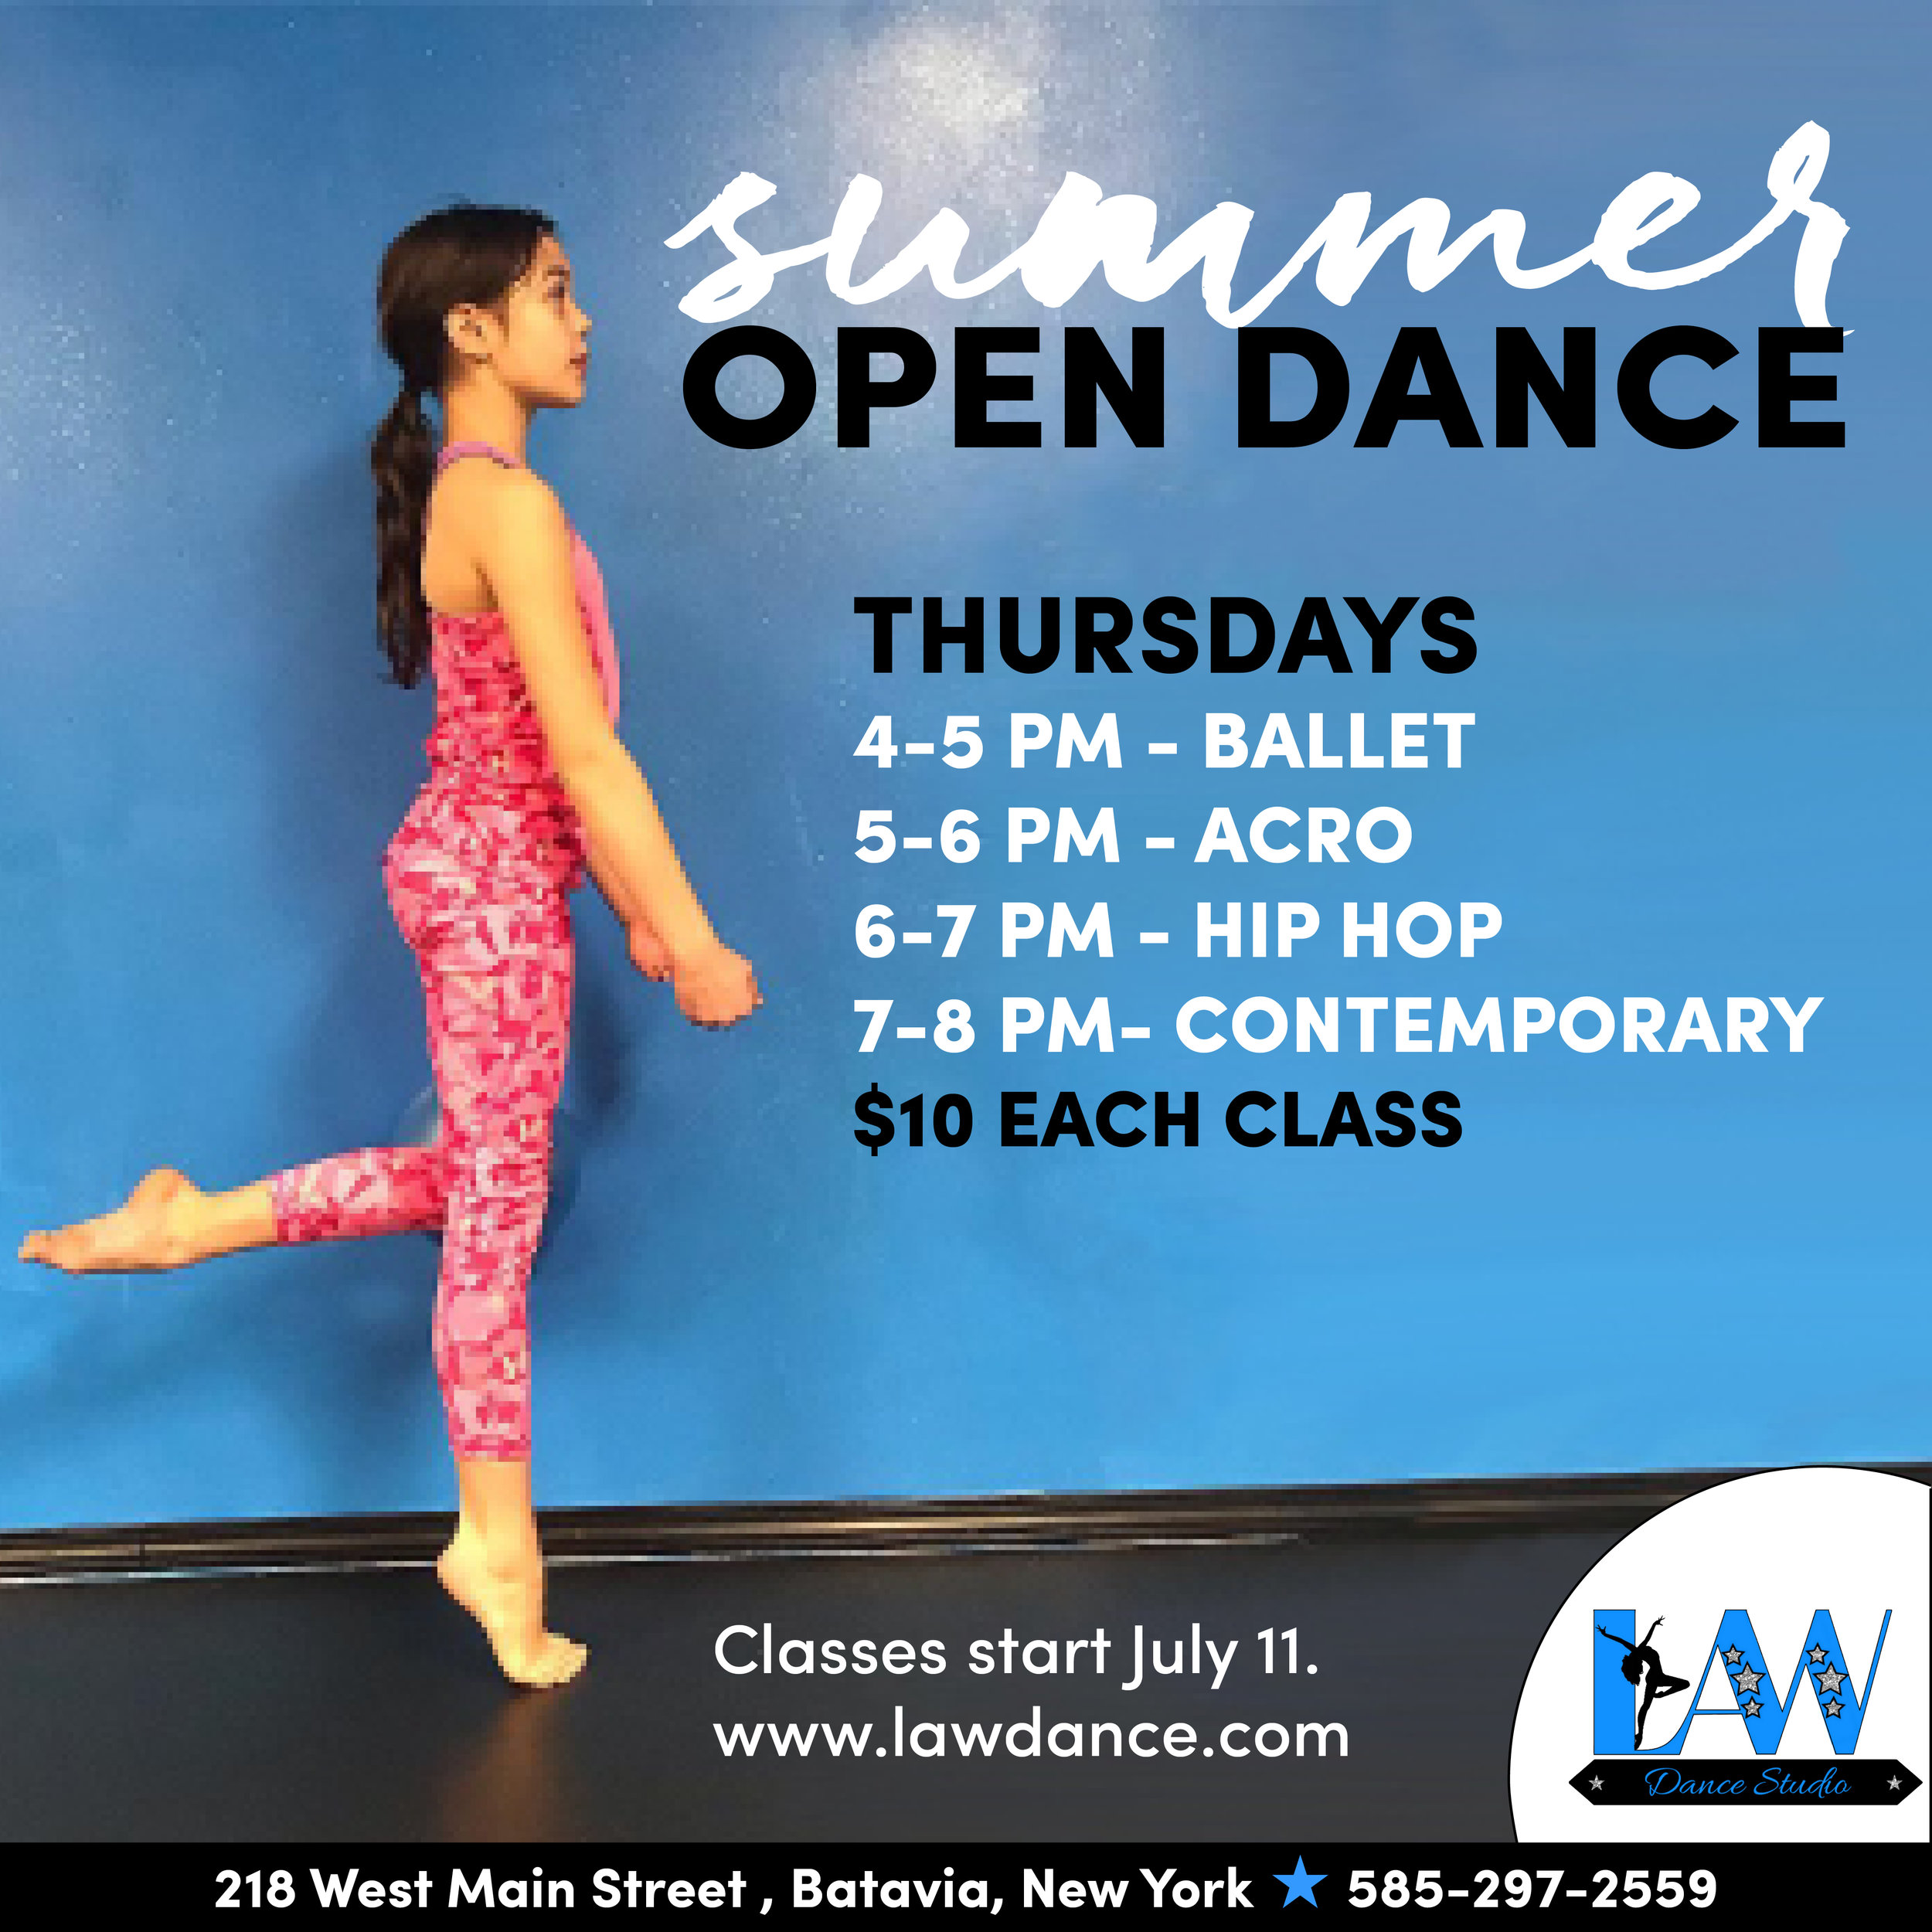 Open Dance Classes - Weekly on Thursdays